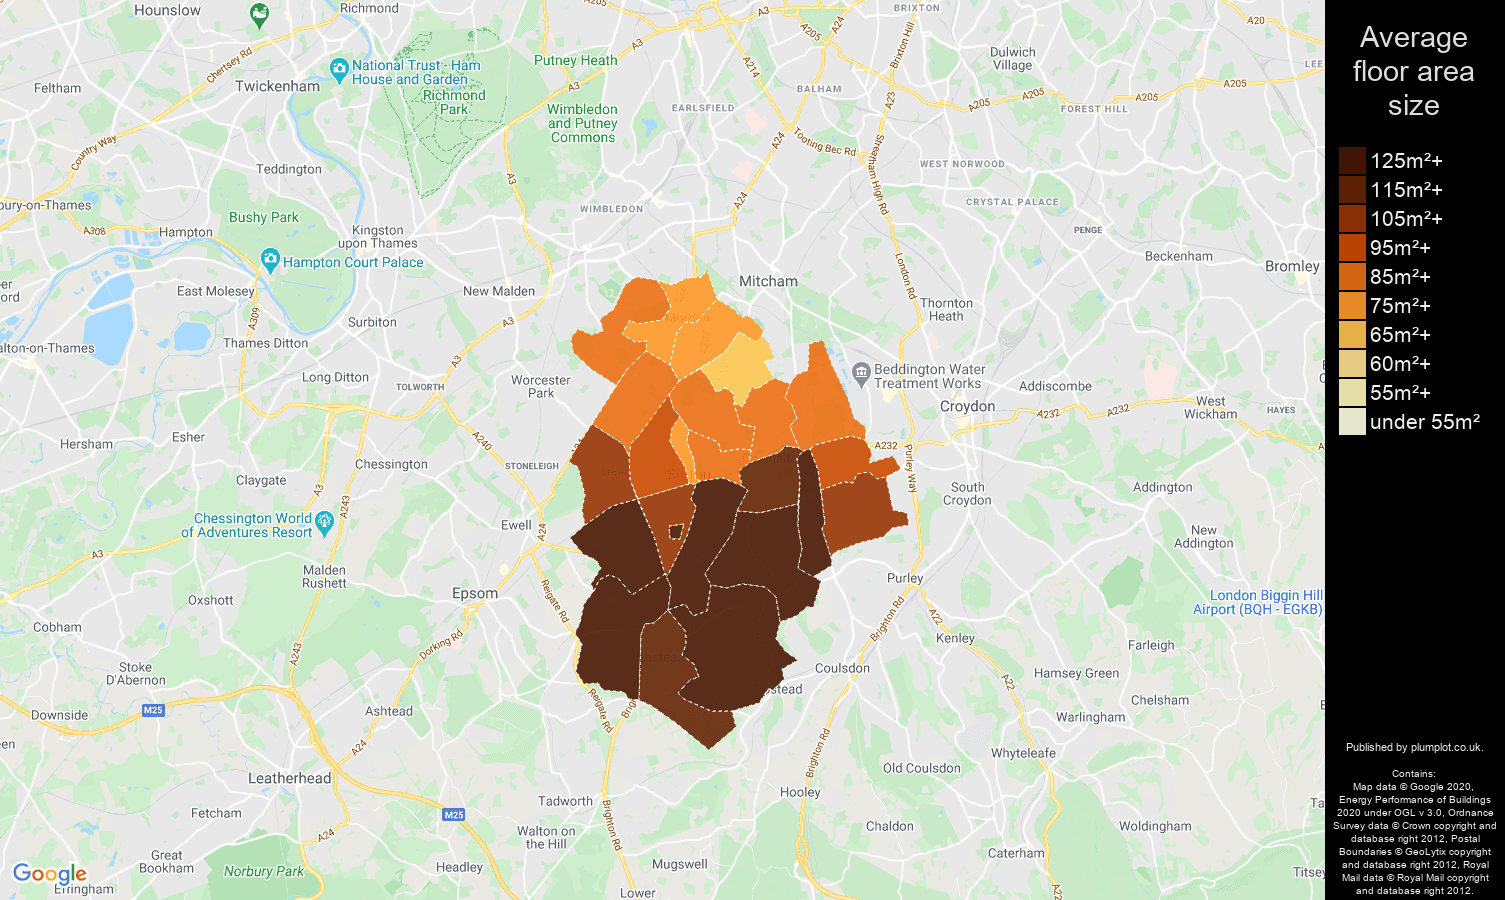 Sutton map of average floor area size of houses